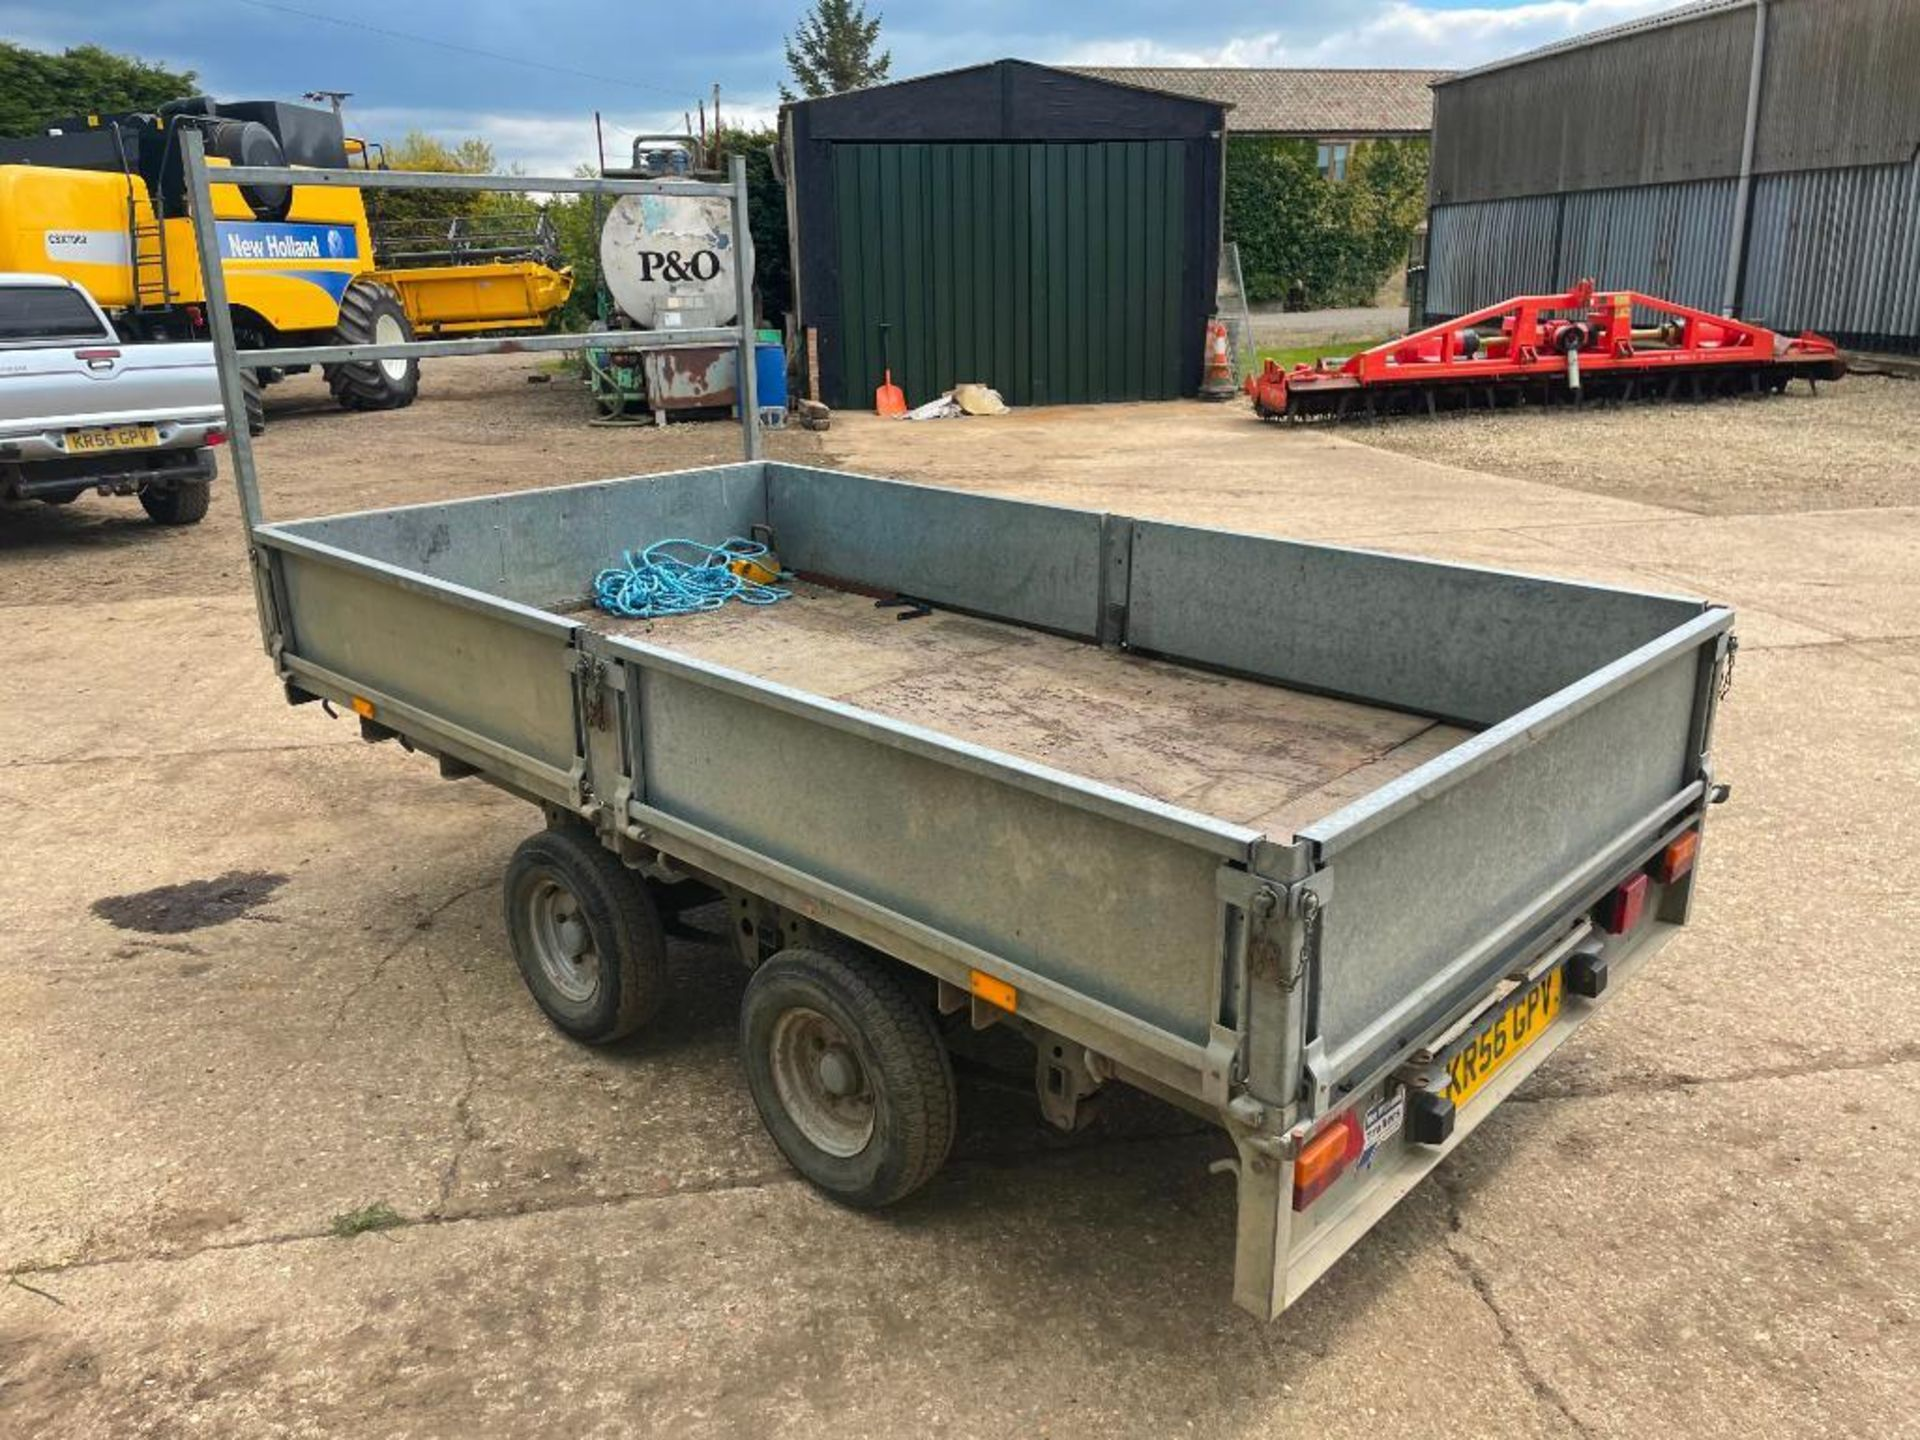 Ifor Williams LT105G 10ft twin axle flat bed trailer with front ladder and aluminium ramps on 145R10 - Image 9 of 12